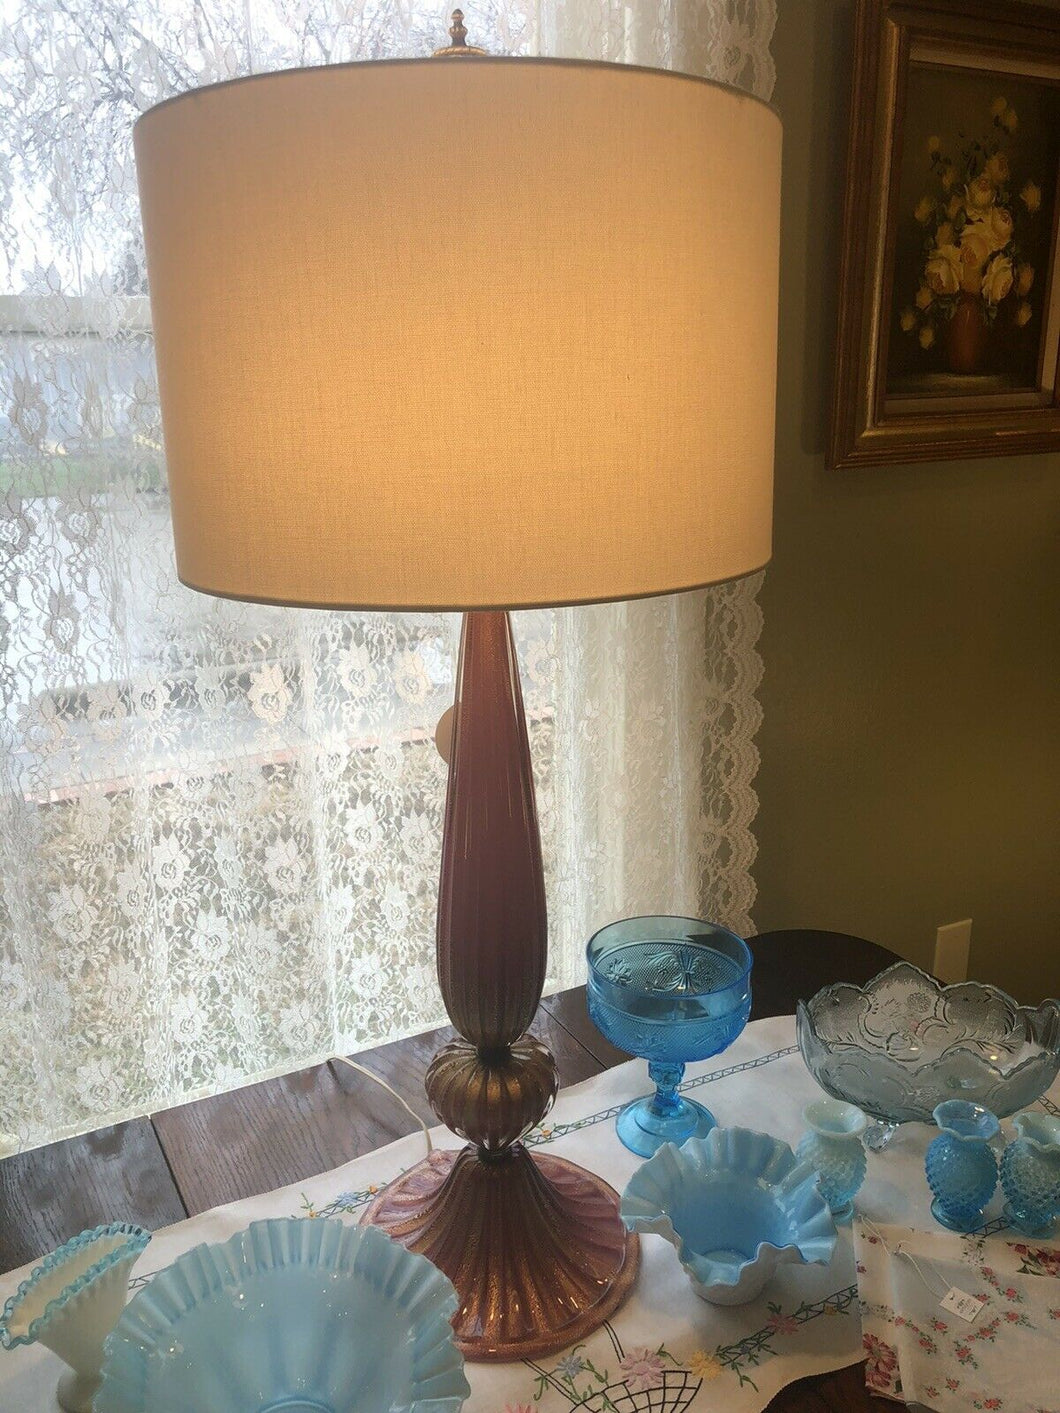 Mid Century Murano Art Glass Lamp 37 Inches Pink With Gold Fleck Eames Era Wow!